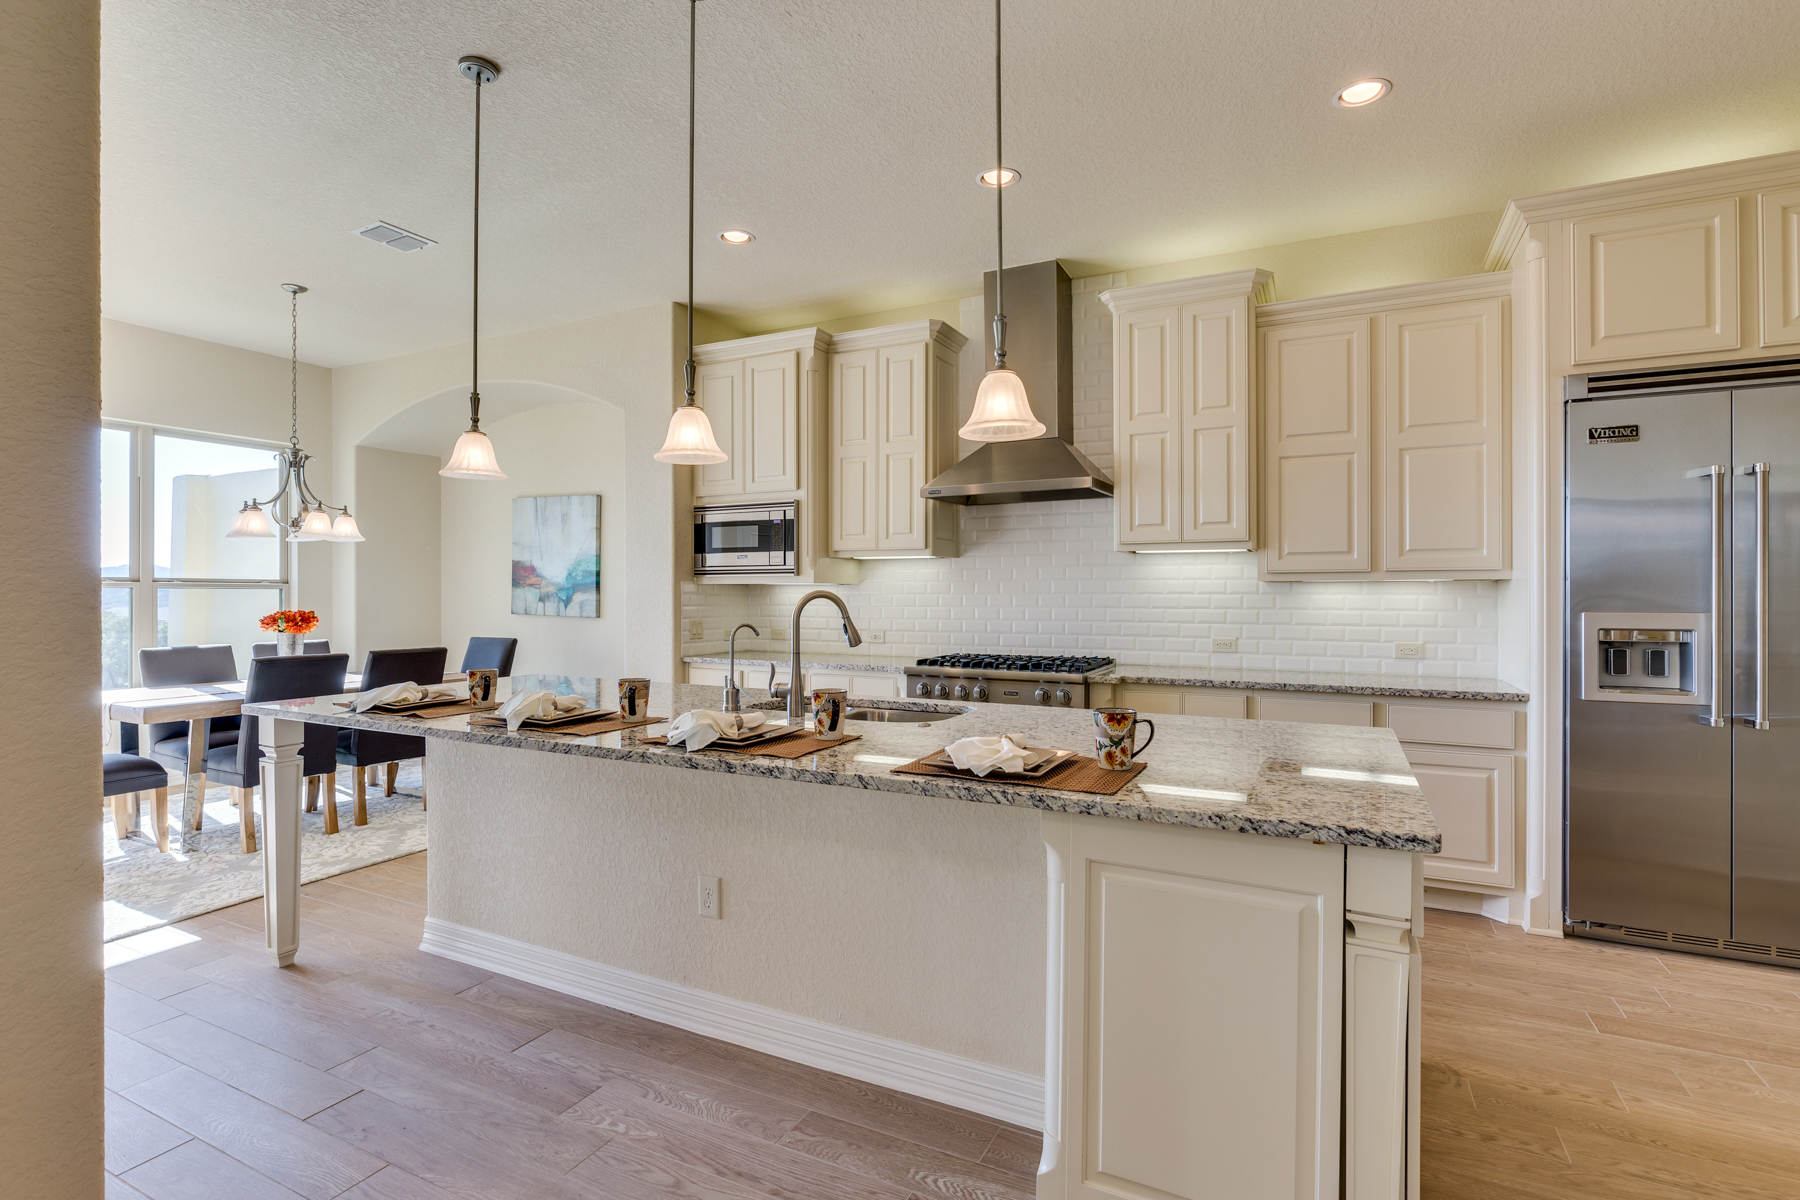 Additional photo for property listing at Stunning New Construction in The Dominion 7214 Bluff Run San Antonio, Texas 78257 United States